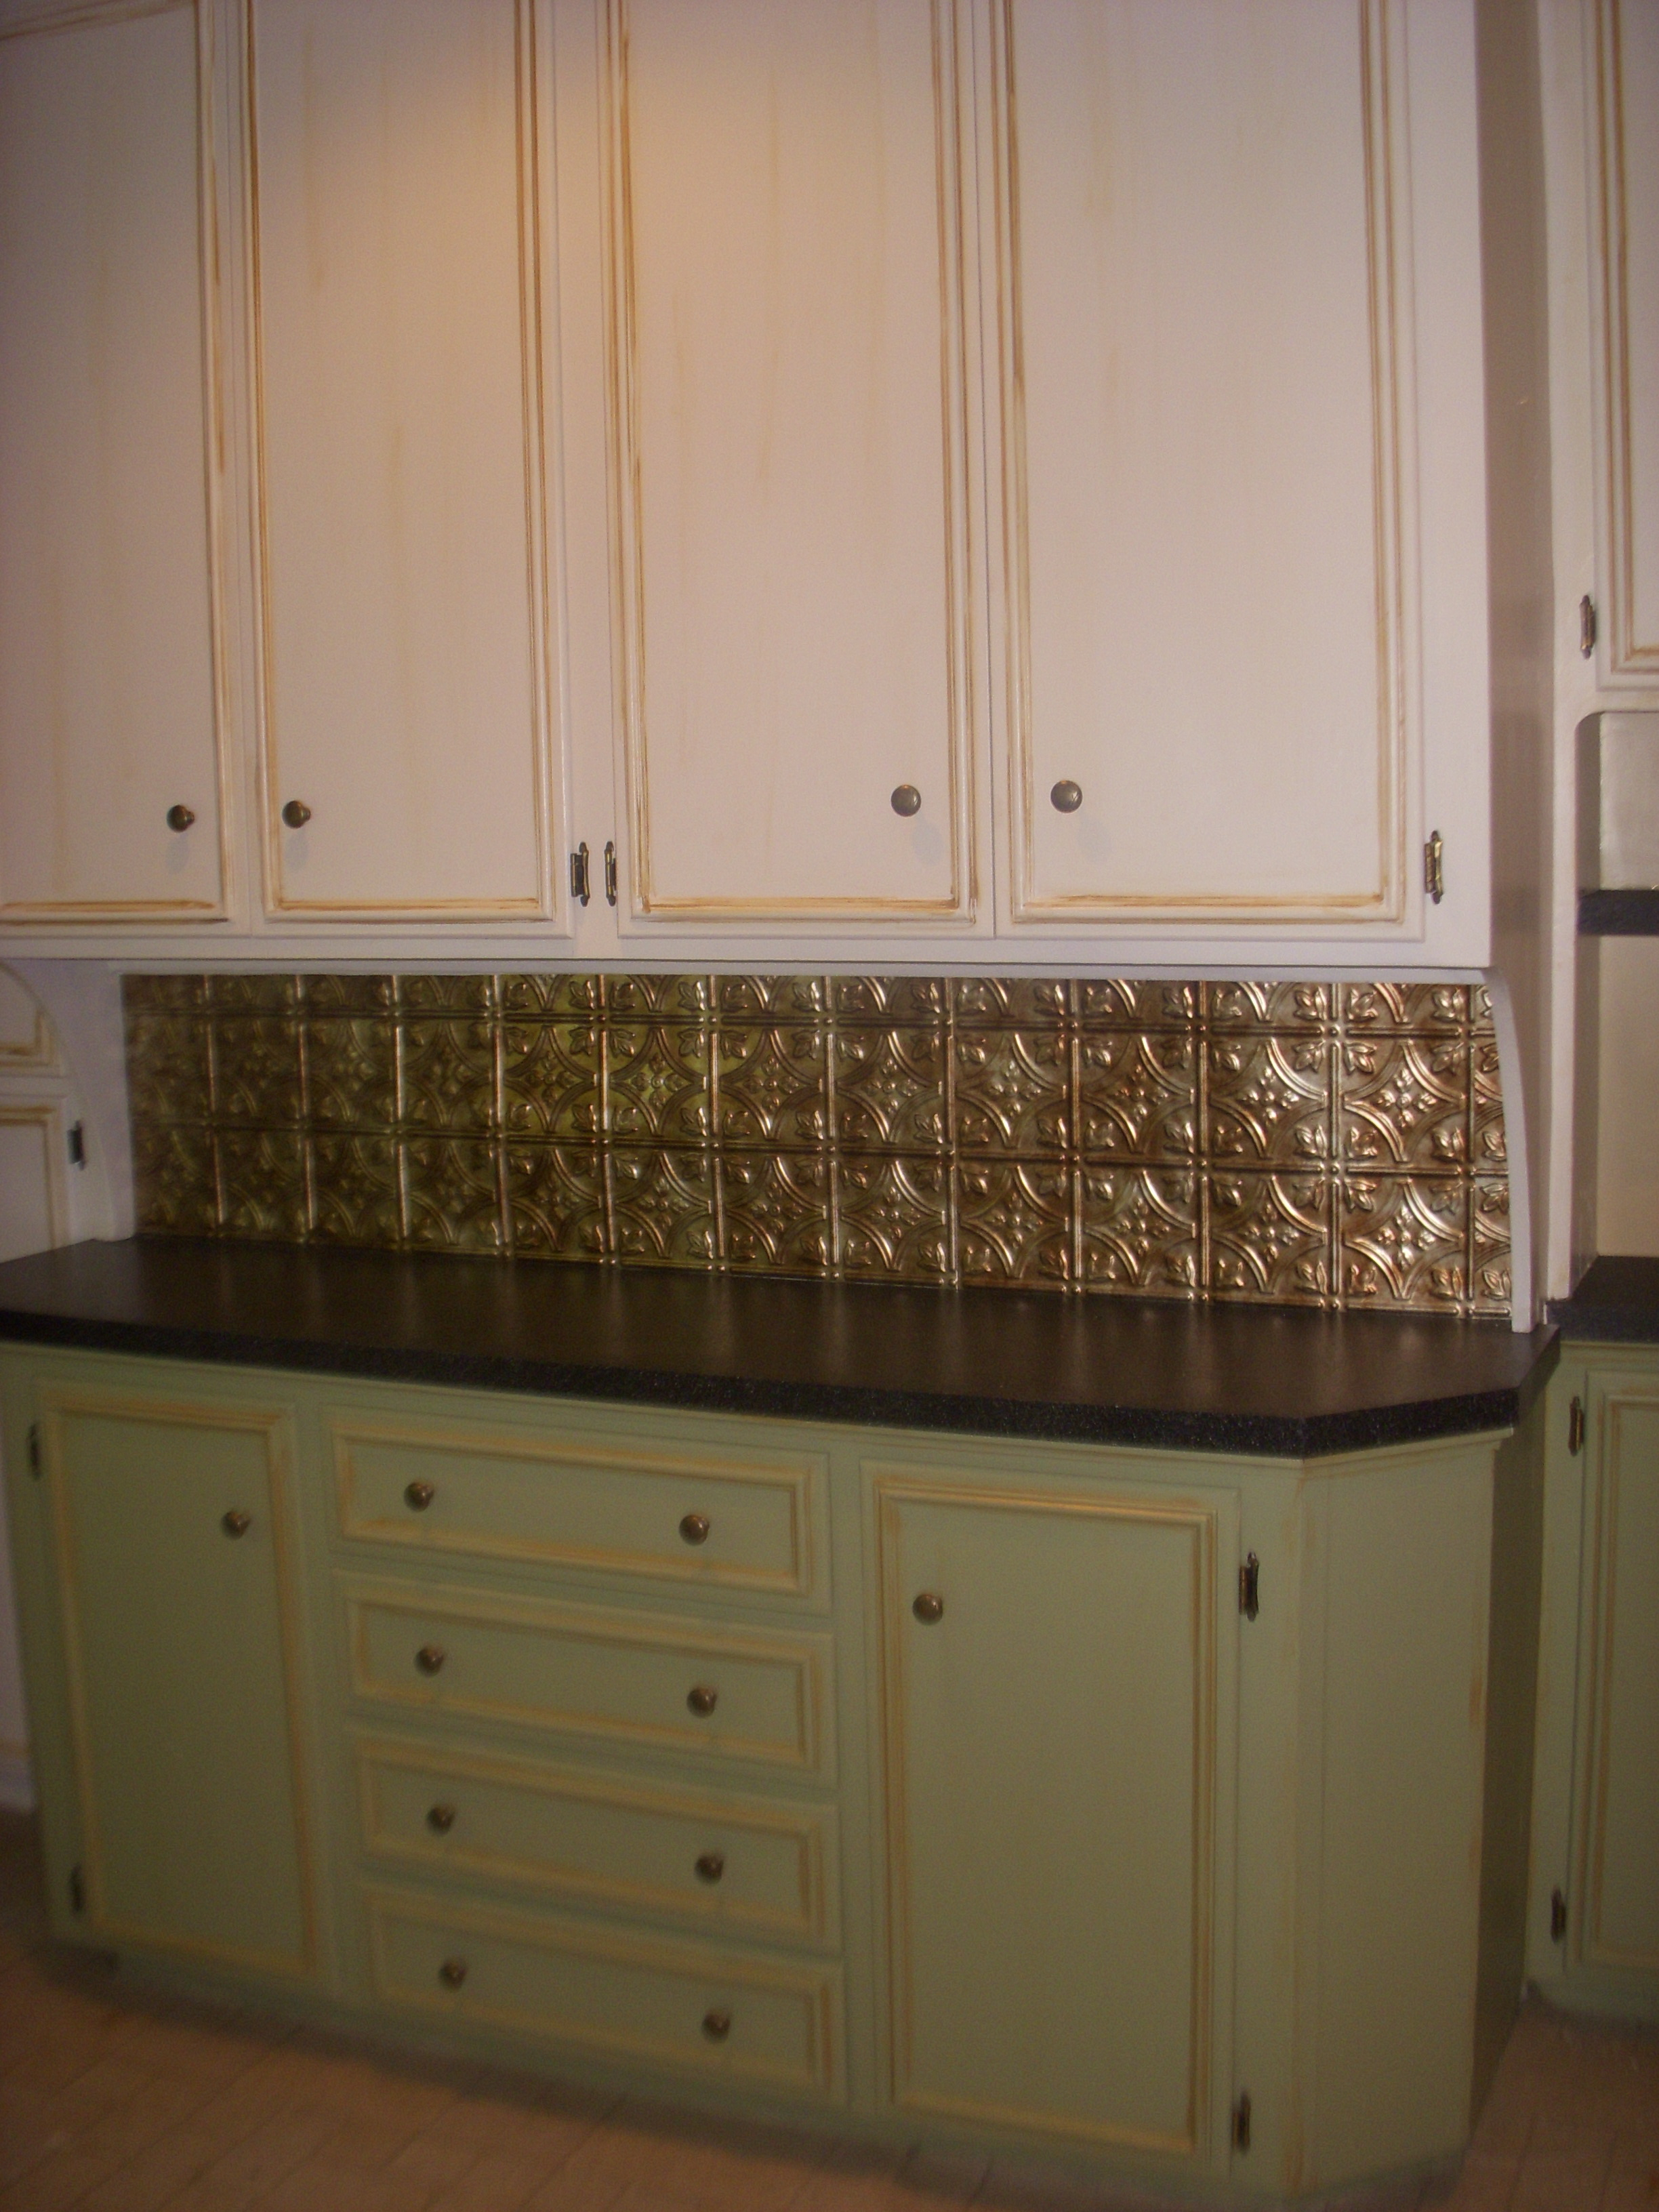 Preparing Cabinets For Granite Countertops Tap Dancing Boxers Paint Your Laminate Countertops With